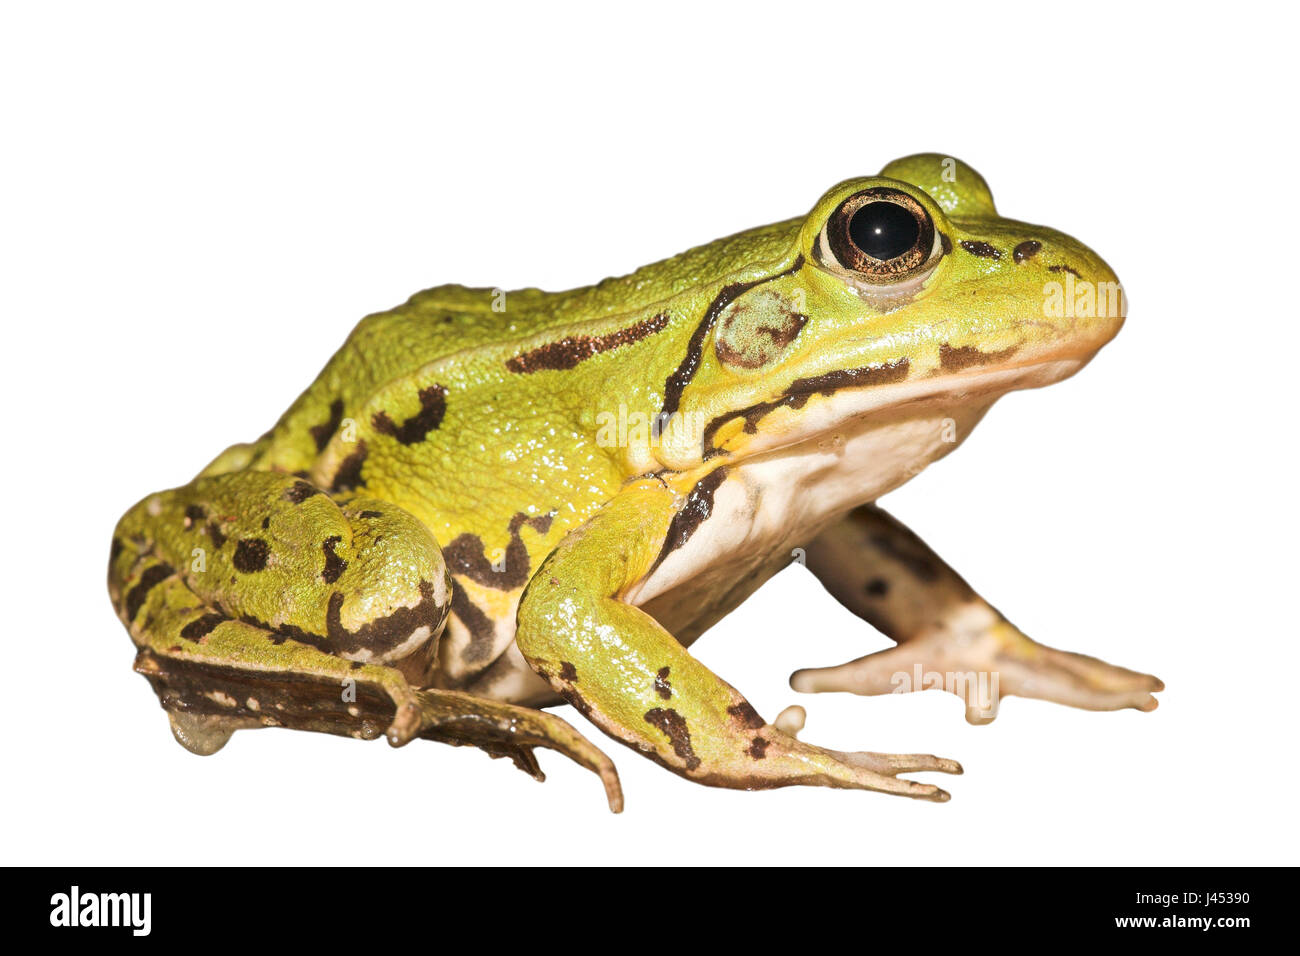 Pool frog against a white background (rendered) - Stock Image